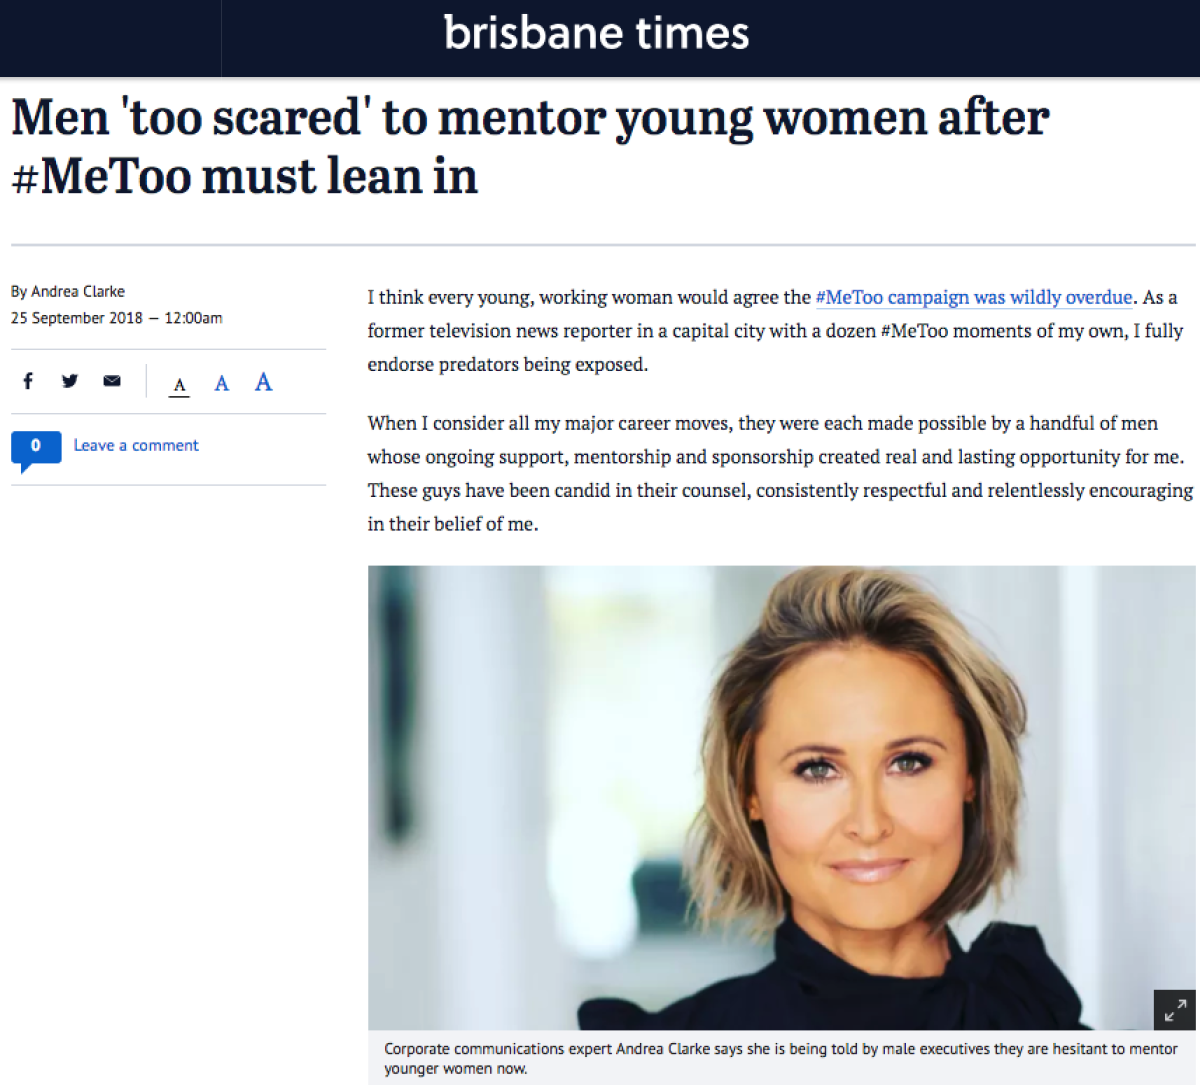 Brisbane Times: Men 'too scared' to mentor young women after